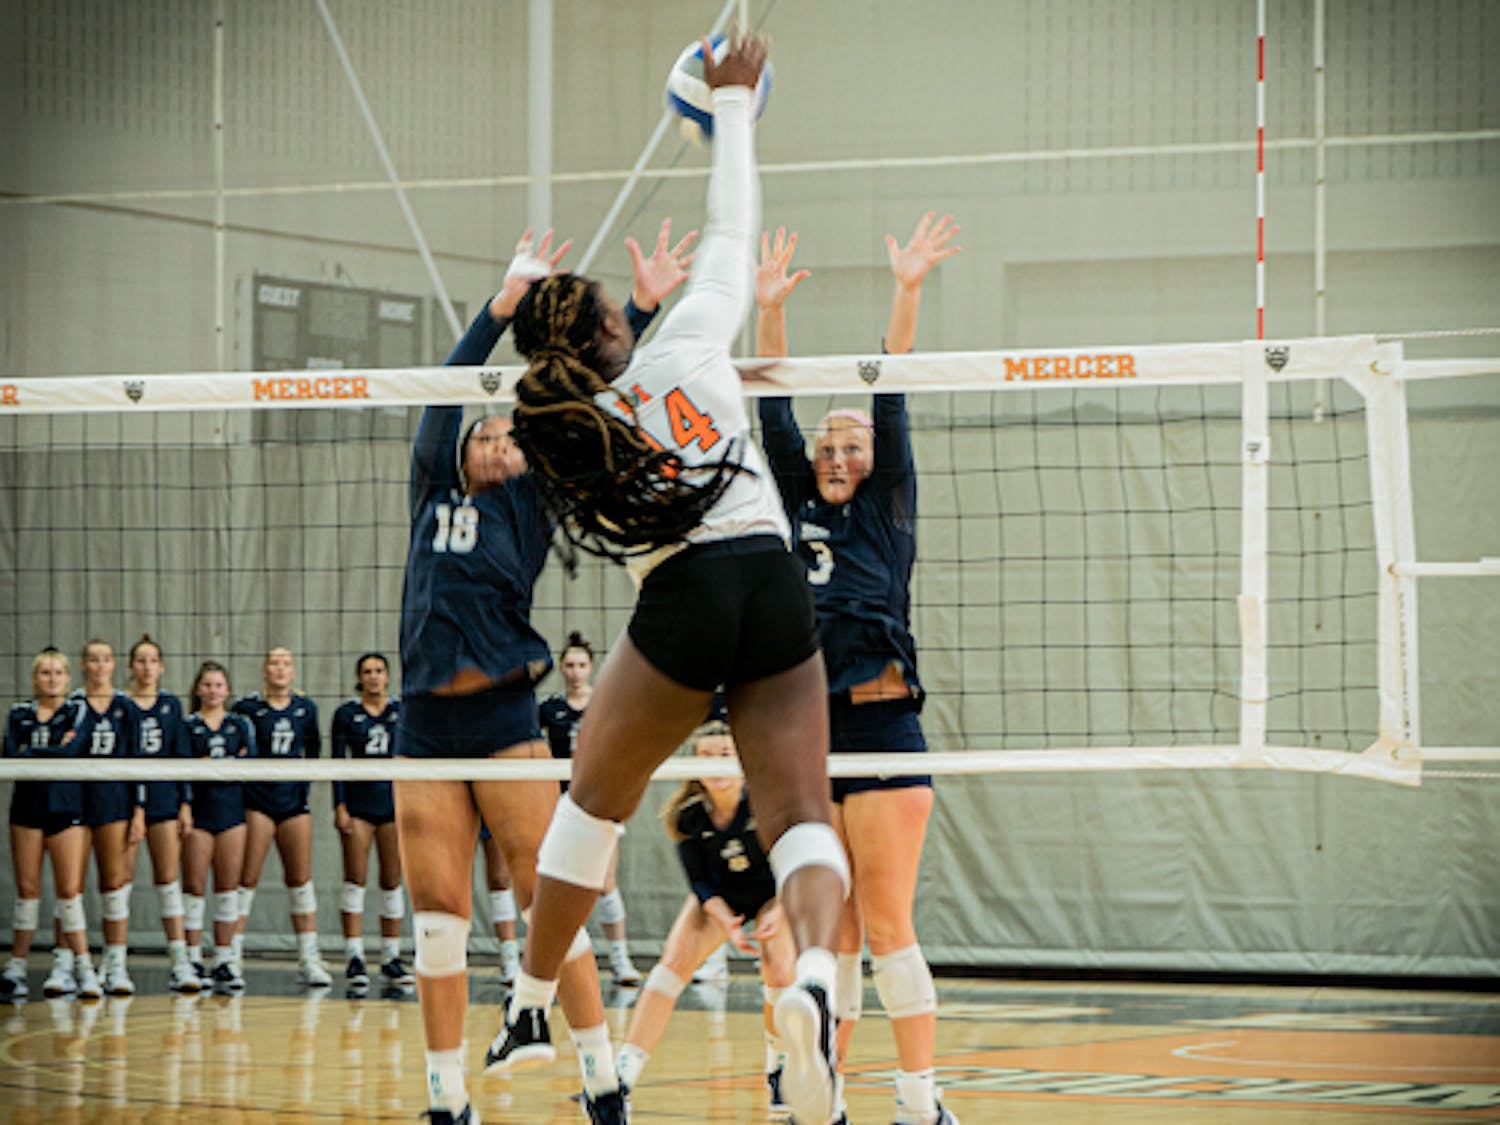 Women's Volleyball 9.21.21.png